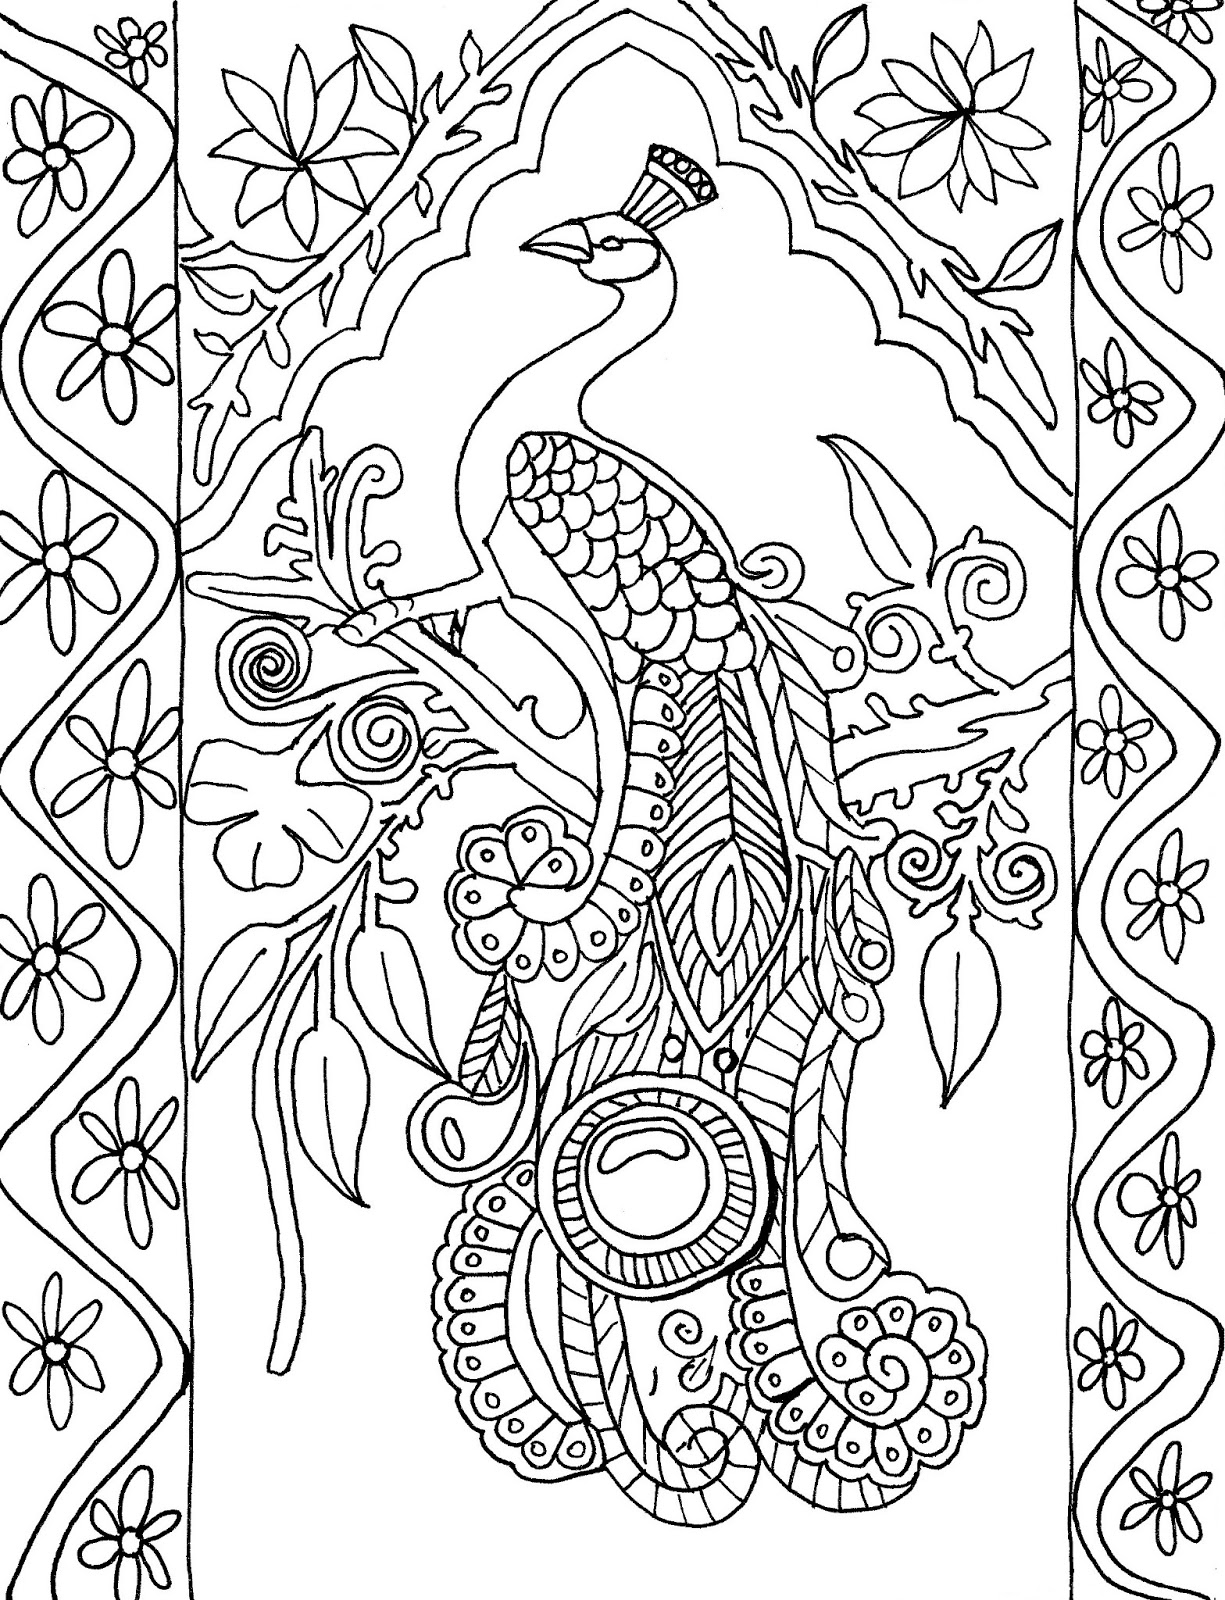 coloring pages of peacock printable peacock coloring pages for kids cool2bkids coloring pages of peacock